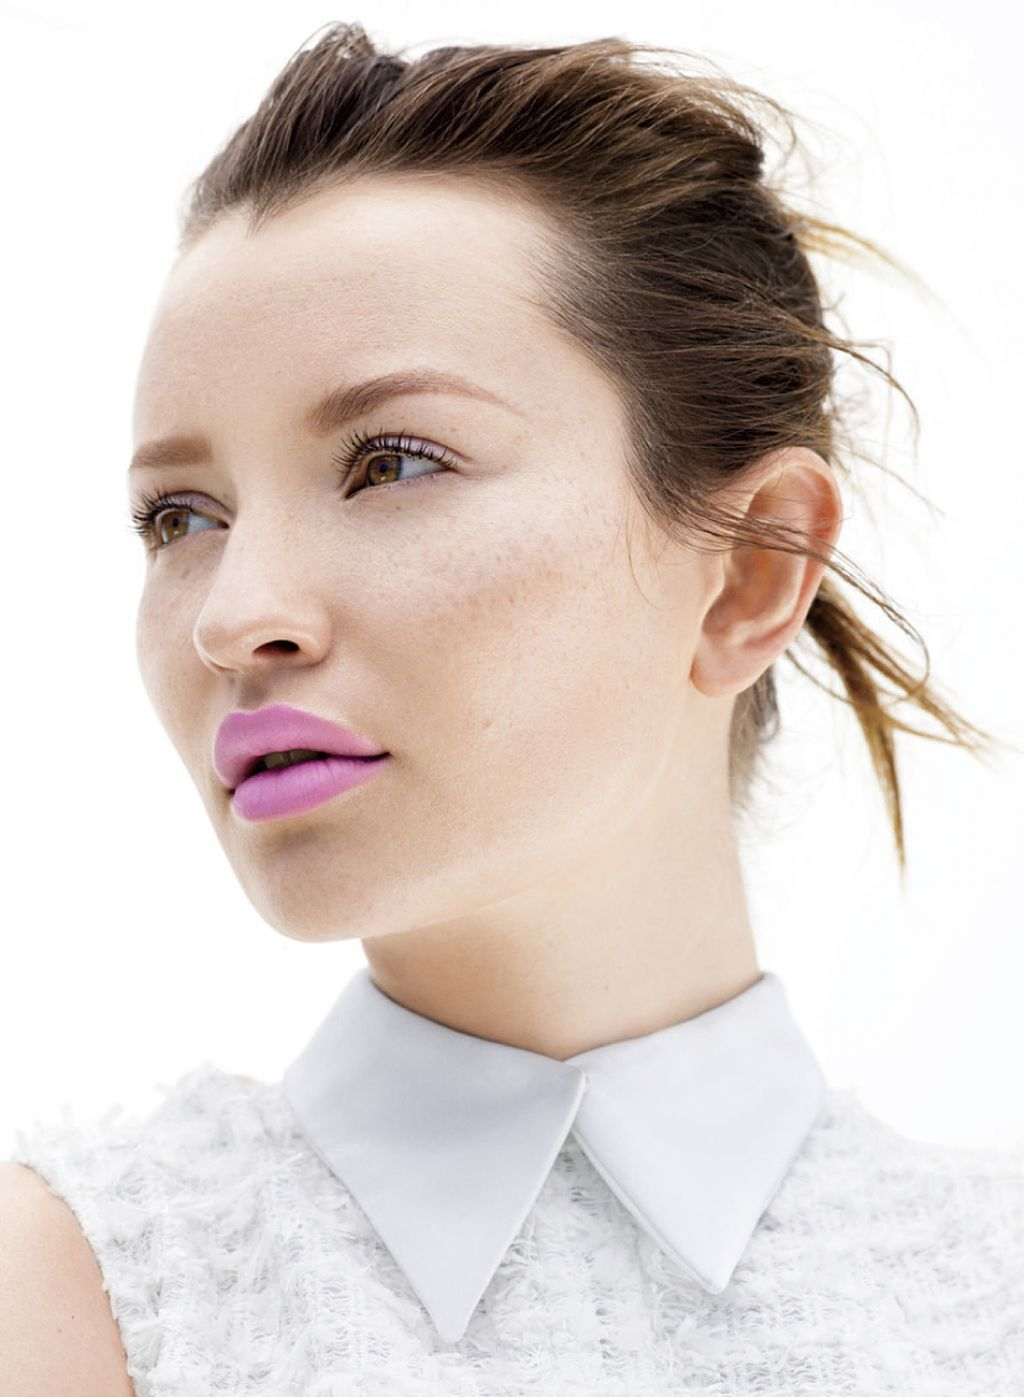 Celebrities with nose piercing  emilybrowning beautiful dolly  Emily Browning  Pinterest  Emily